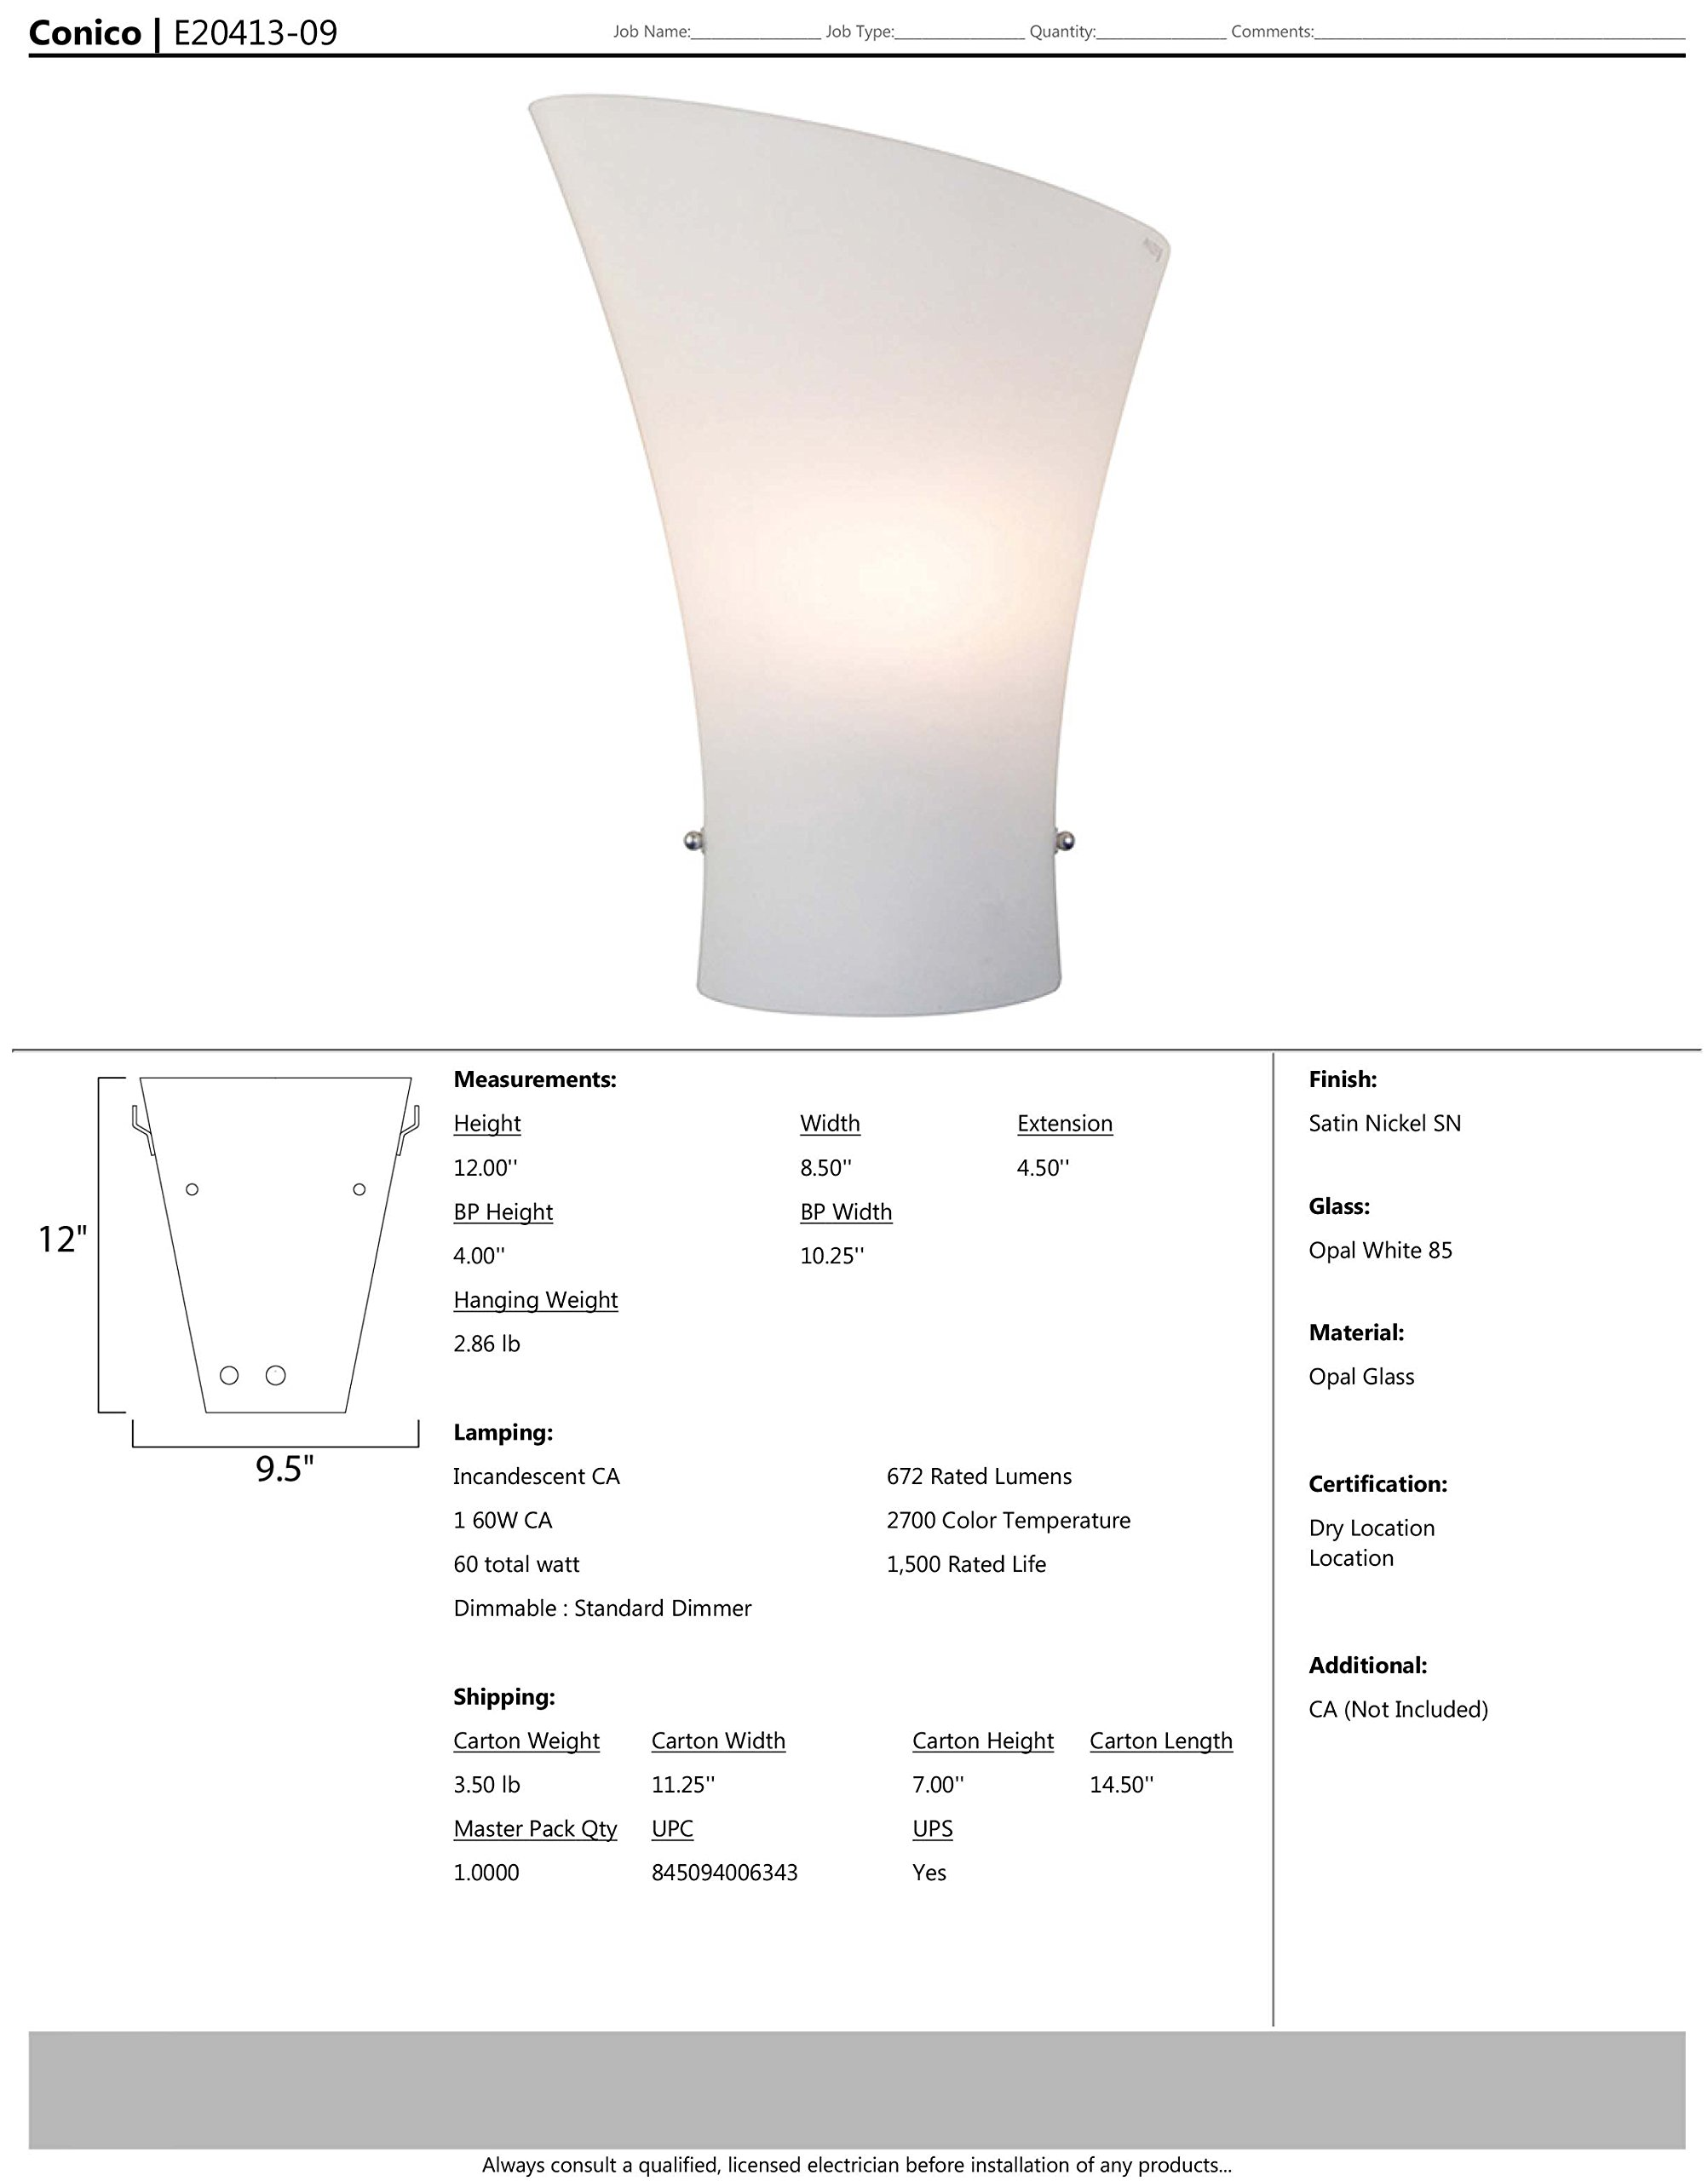 ET2 E20413-09 Conico 1-Light Wall Sconce, Satin Nickel Finish, Opal White Glass, CA Incandescent Incandescent Bulb, 20W Max., Dry Safety Rated, 2900K Color Temp., Standard Dimmable, Shade Material, 588 Rated Lumens